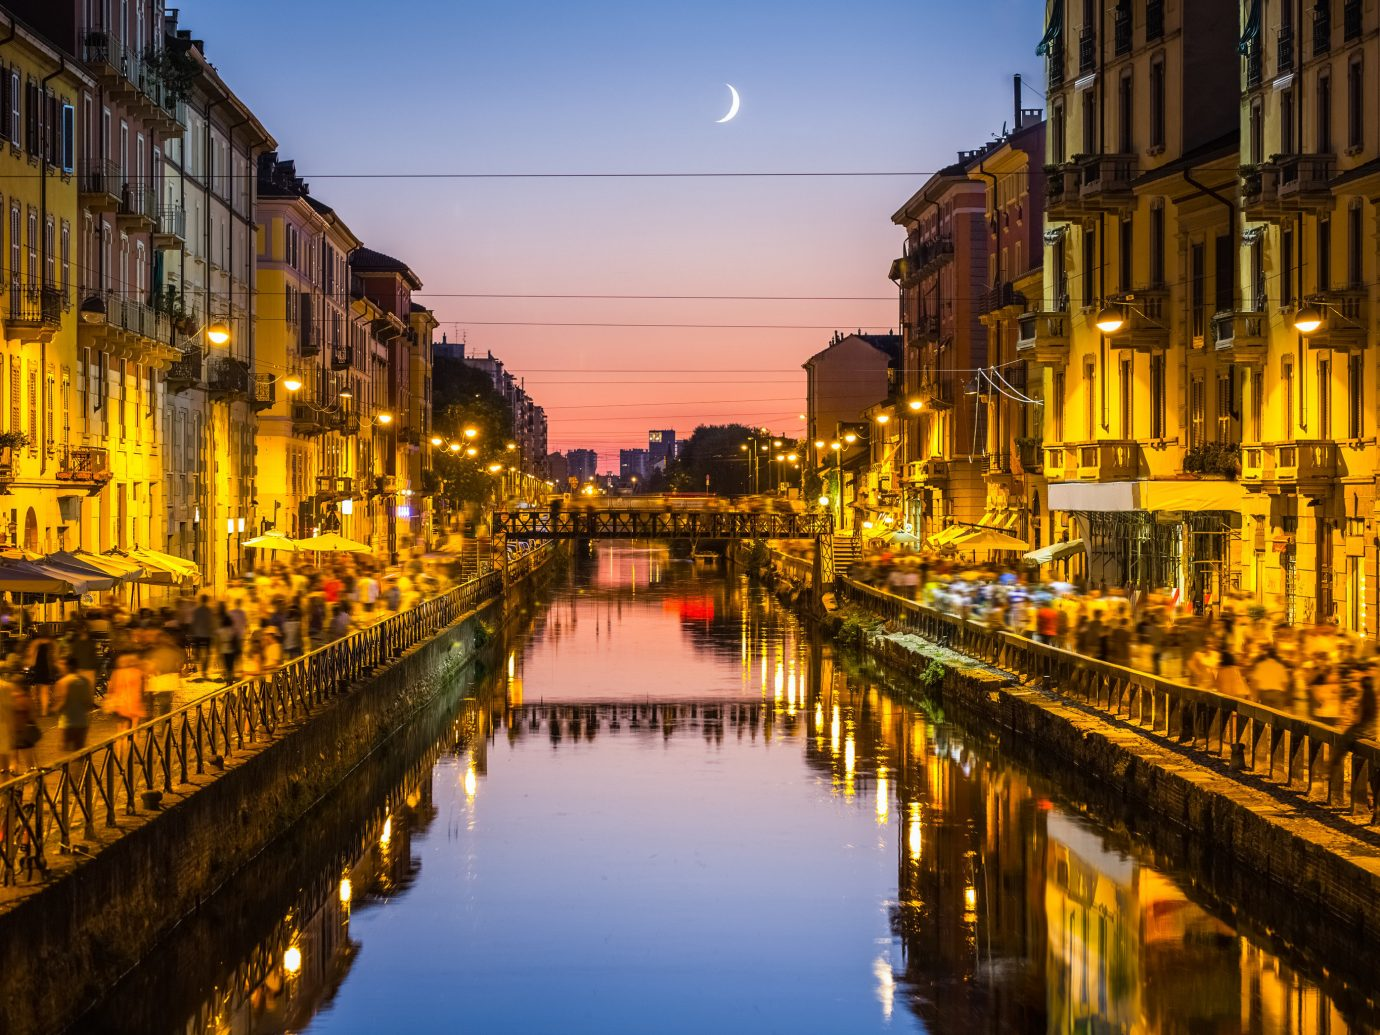 Arts + Culture Italy Milan Trip Ideas waterway reflection Canal body of water City water landmark night Town urban area cityscape sky evening metropolis street tourist attraction channel River